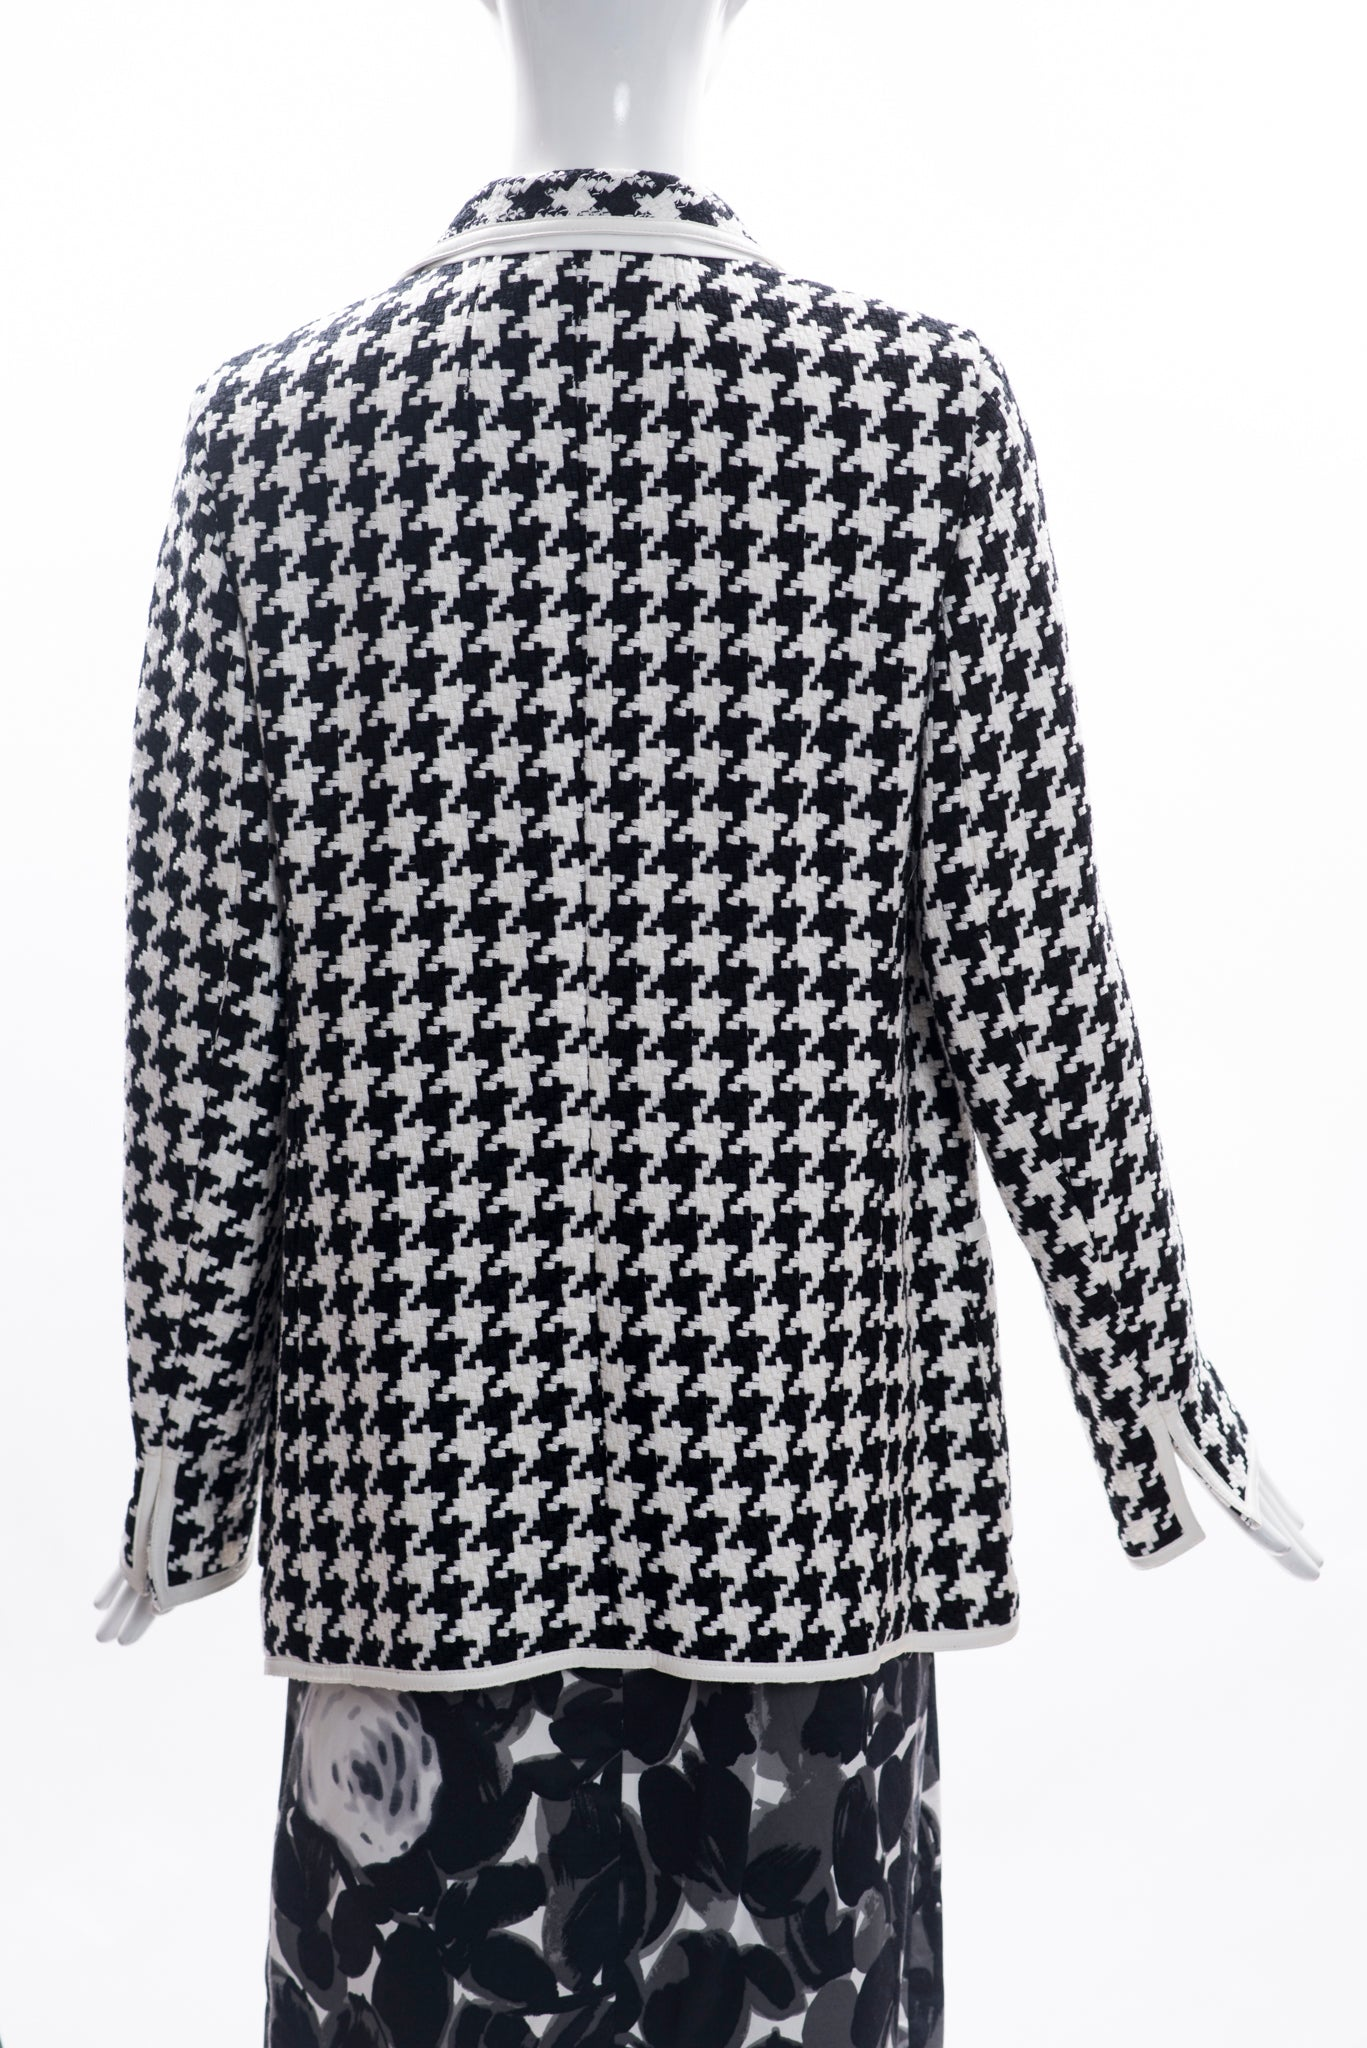 AKRIS Black White Houndstooth Linen Faux Leather Trim Blazer Jacket F44 12 $3990